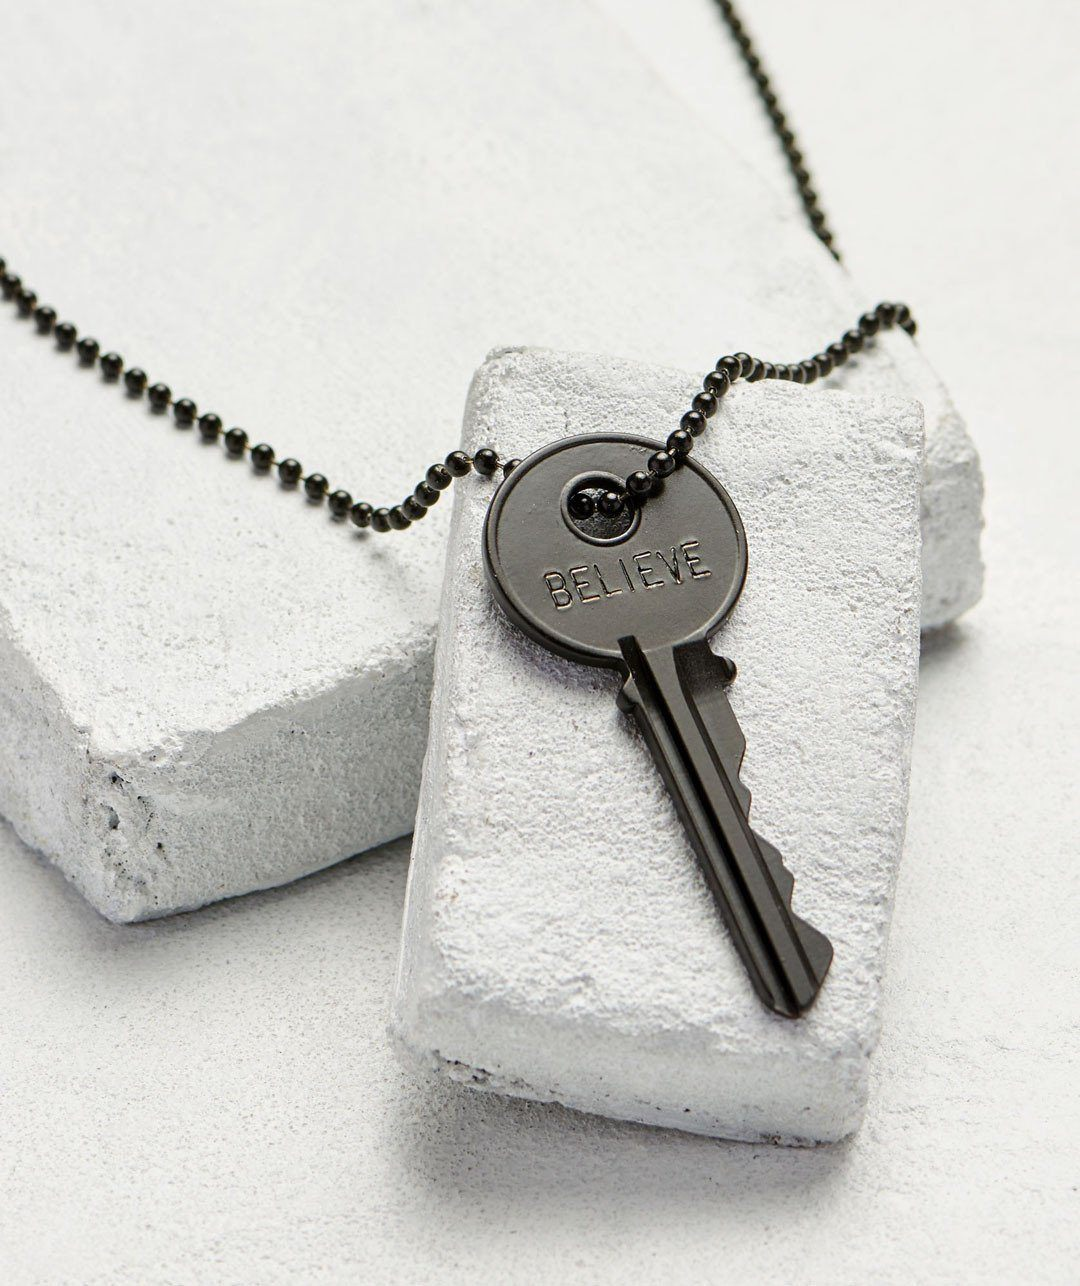 Matte Black Key Necklace - WITH CUSTOM HIDDEN Necklaces The Giving Keys BELIEVE Matte Black